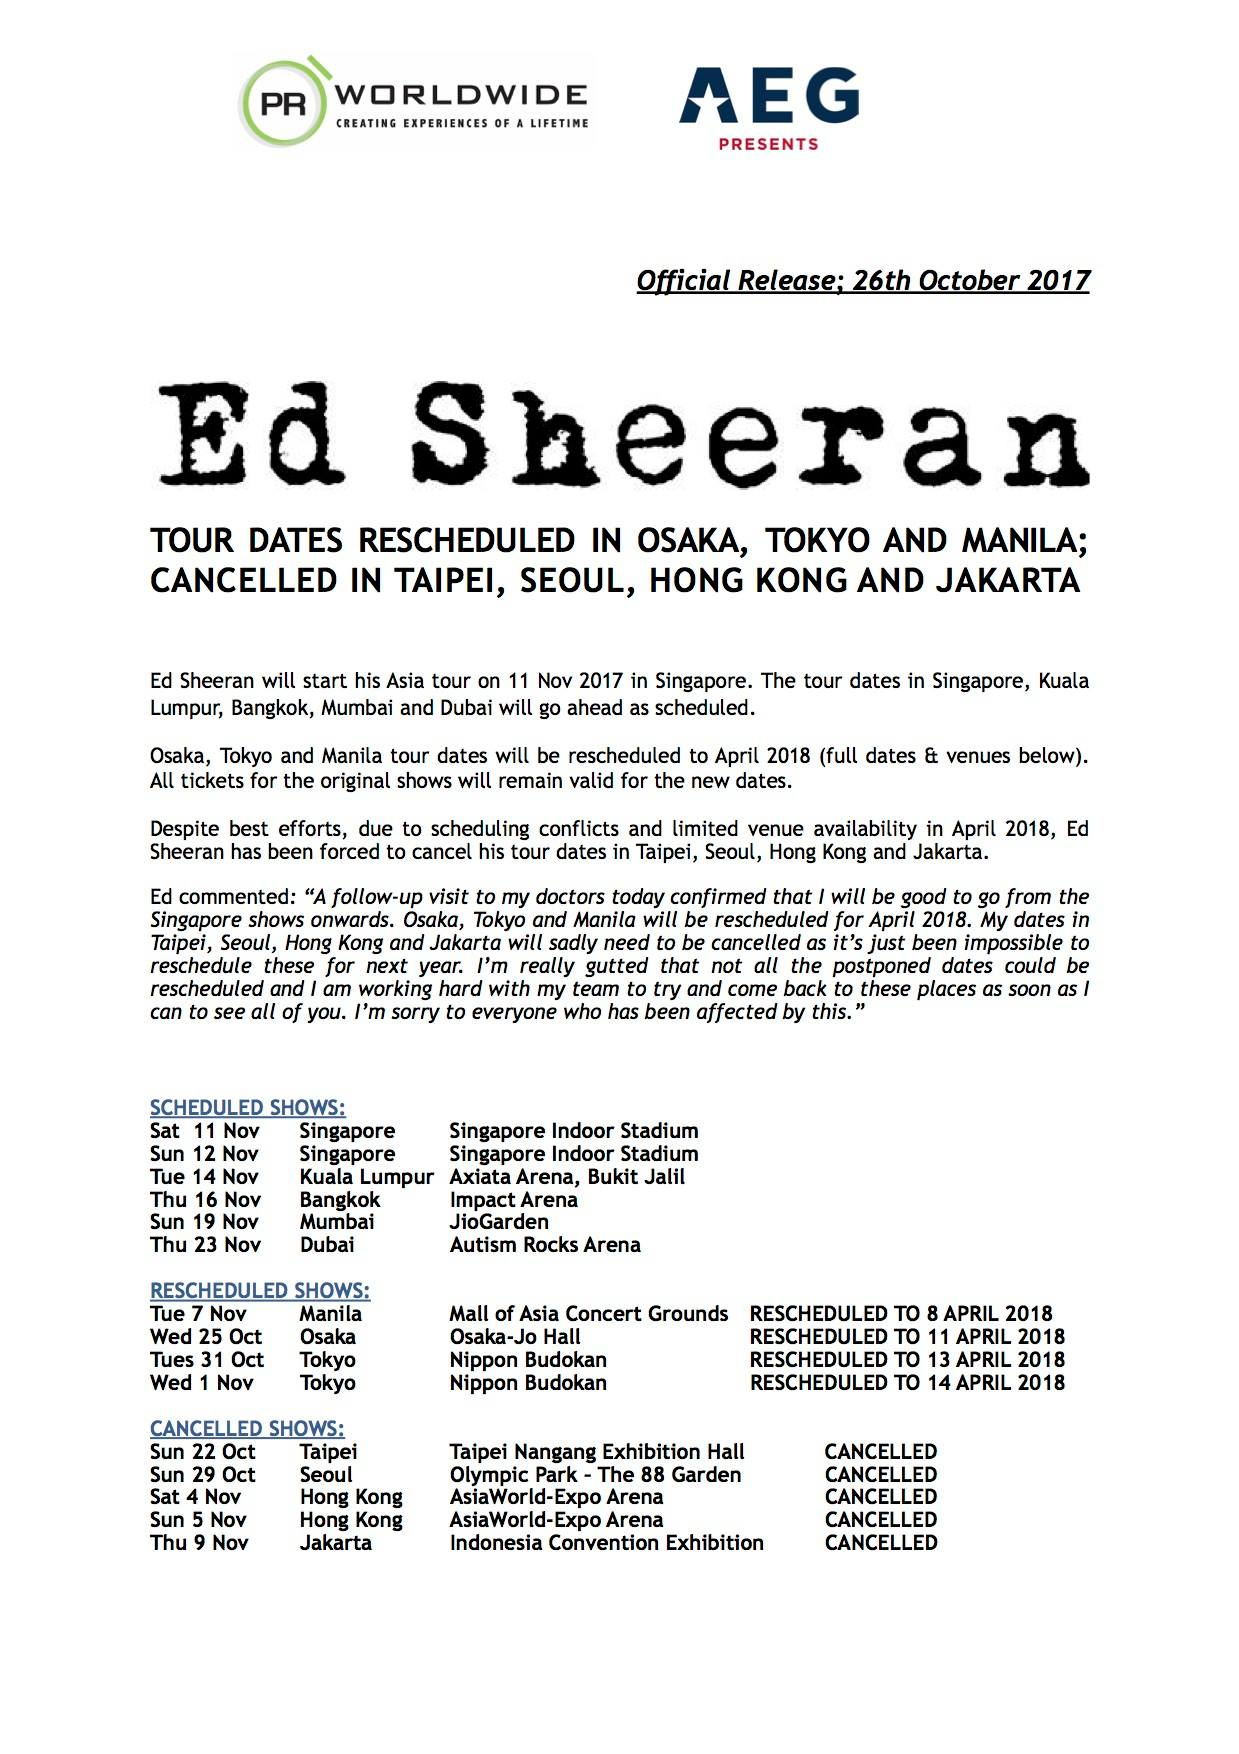 Ed Sheeran Has Confirmed That His Malaysian Concert Will Go On As